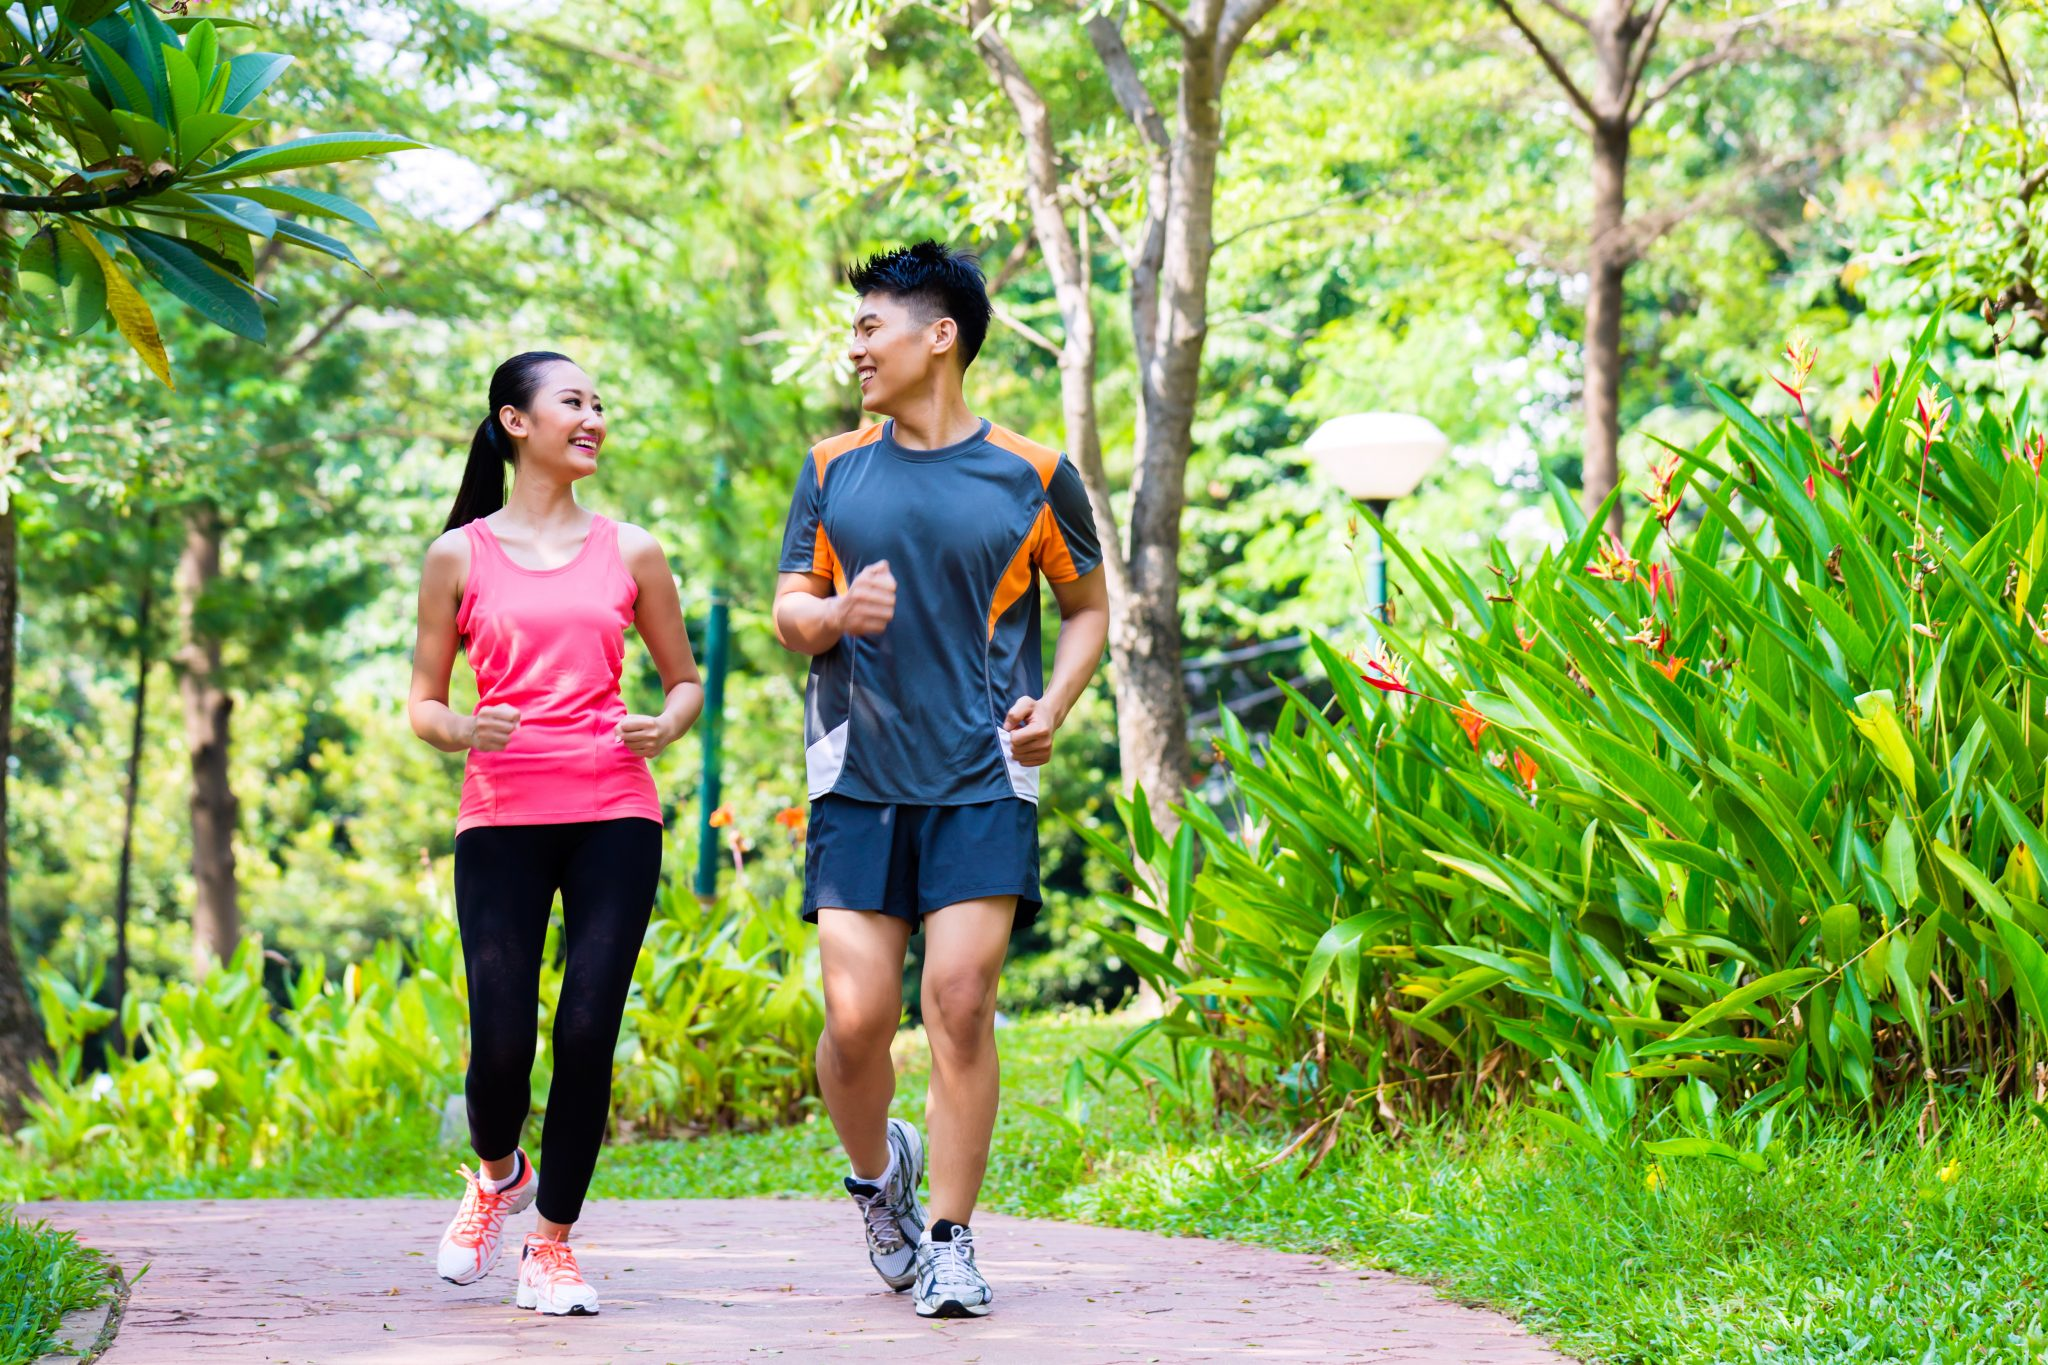 Young Asian couple jogging in a park.